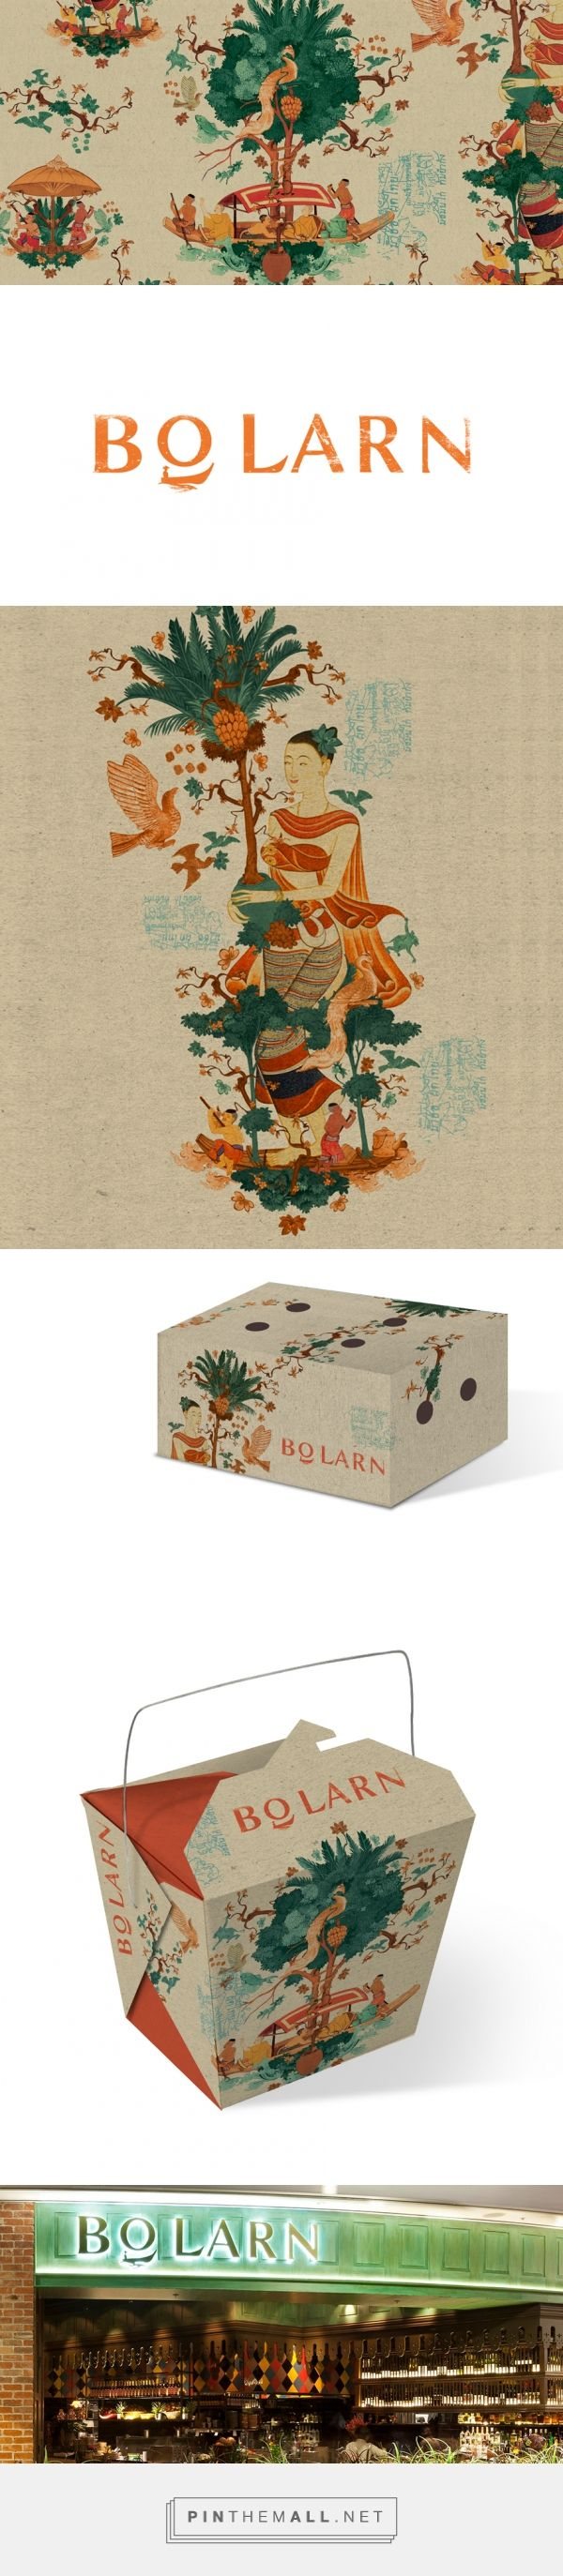 Bo Larn Vintage Thai Restaurant Branding and Packaging by The Creative Method | Fivestar Branding Agency – Design and Branding Agency & Curated Inspiration Gallery